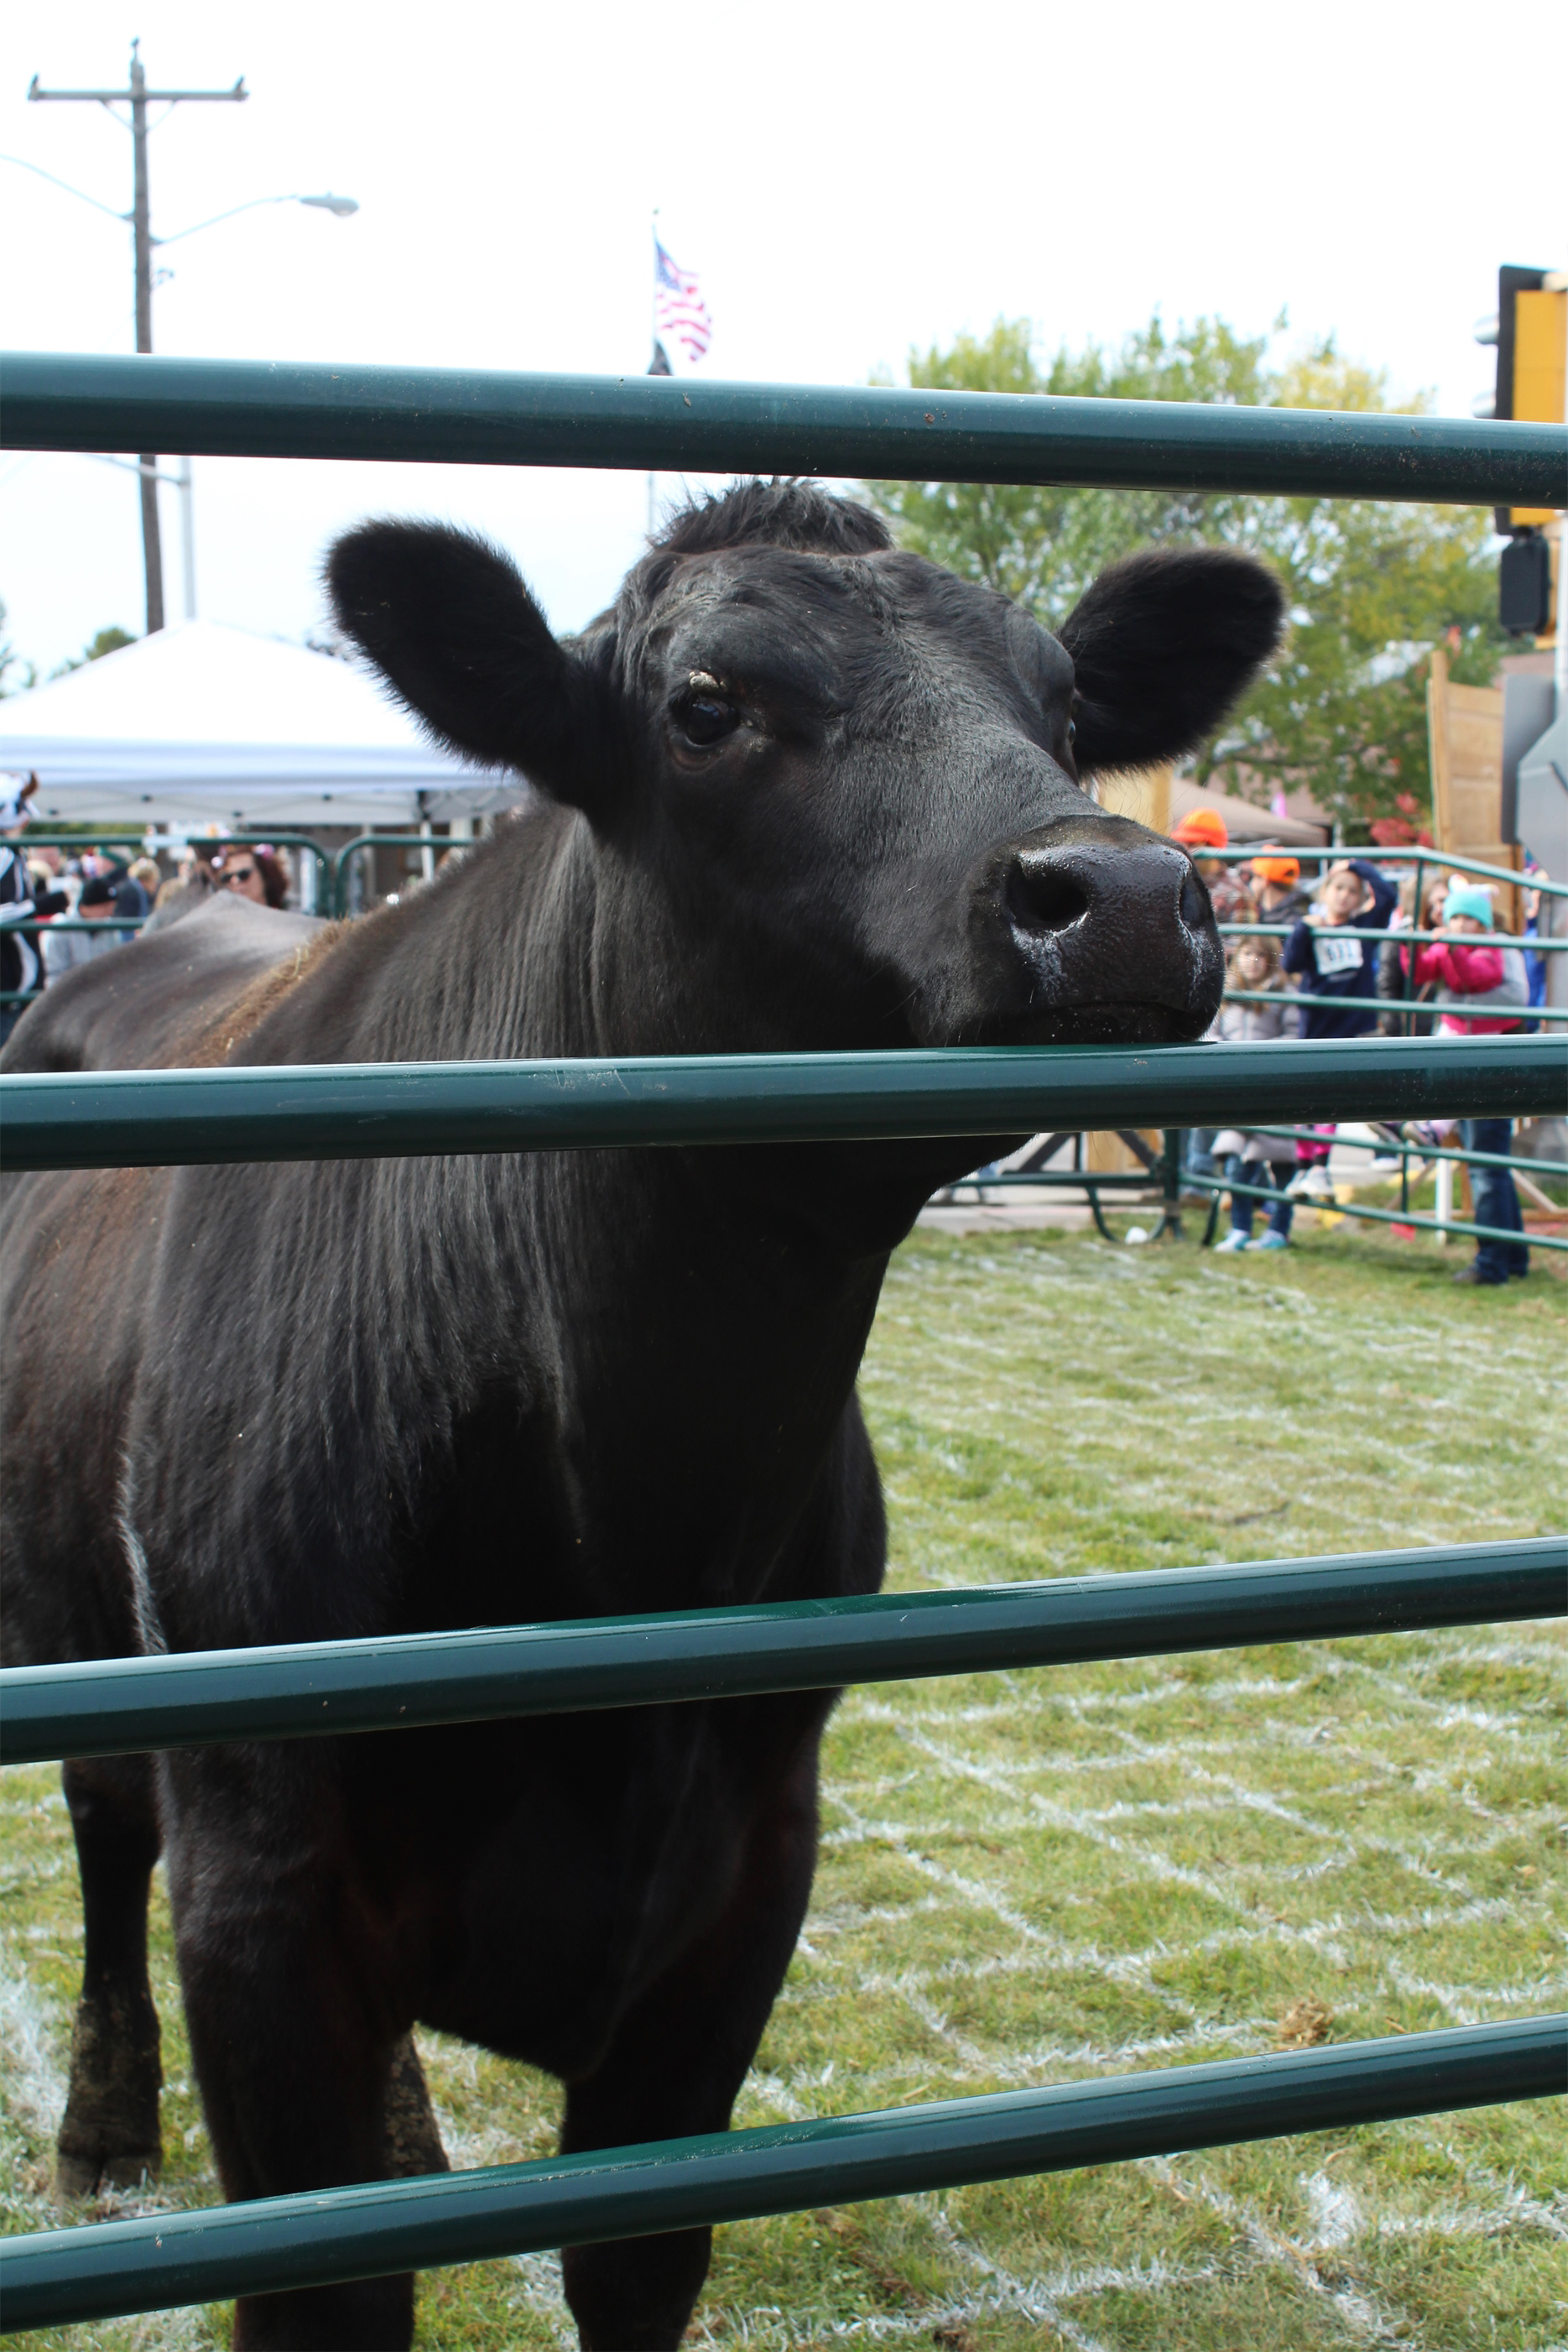 At the annual Cow Pie Plop, the crowd watches this cow closely. The event is a fundraiser held by the Lakeland Hawks Ice Arena during Beef-A-Rama in Minocqua. Kim Johnson photo